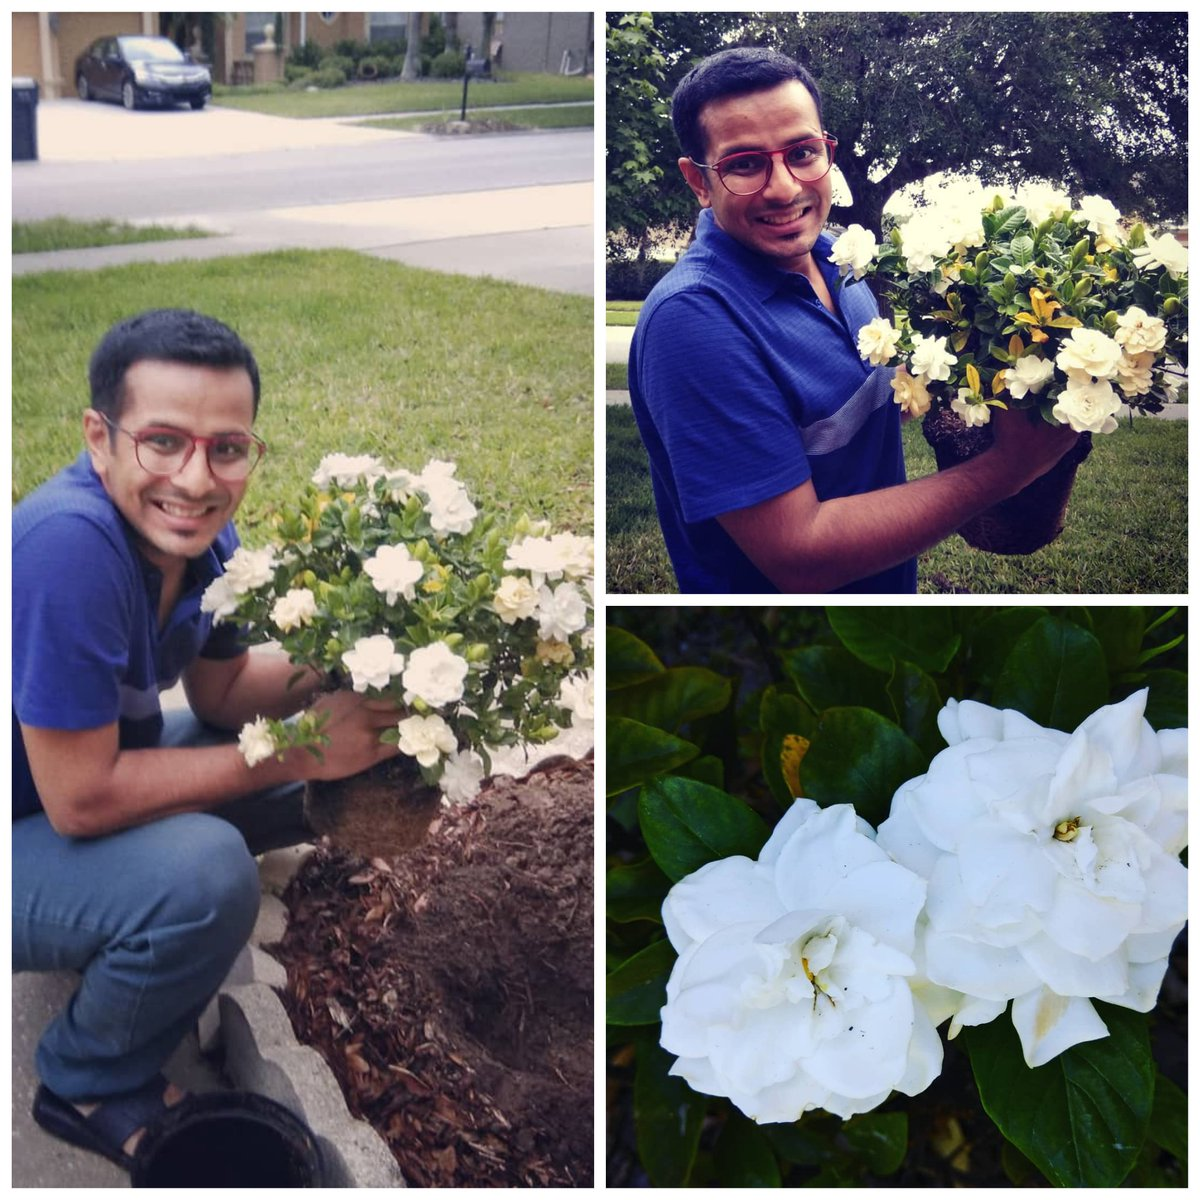 Happy #WorldEnvironmentDay Aah, if only I could digitally share the intoxicating sweet scent of these #Gardenias ! One of my favourite #flowers 😍! The rains are here, go plant your #garden!  #EnvironmentDay #FlowerPower  #beatplasticpollution #plasticpollution #gardening #fun https://t.co/AB53QipPCW